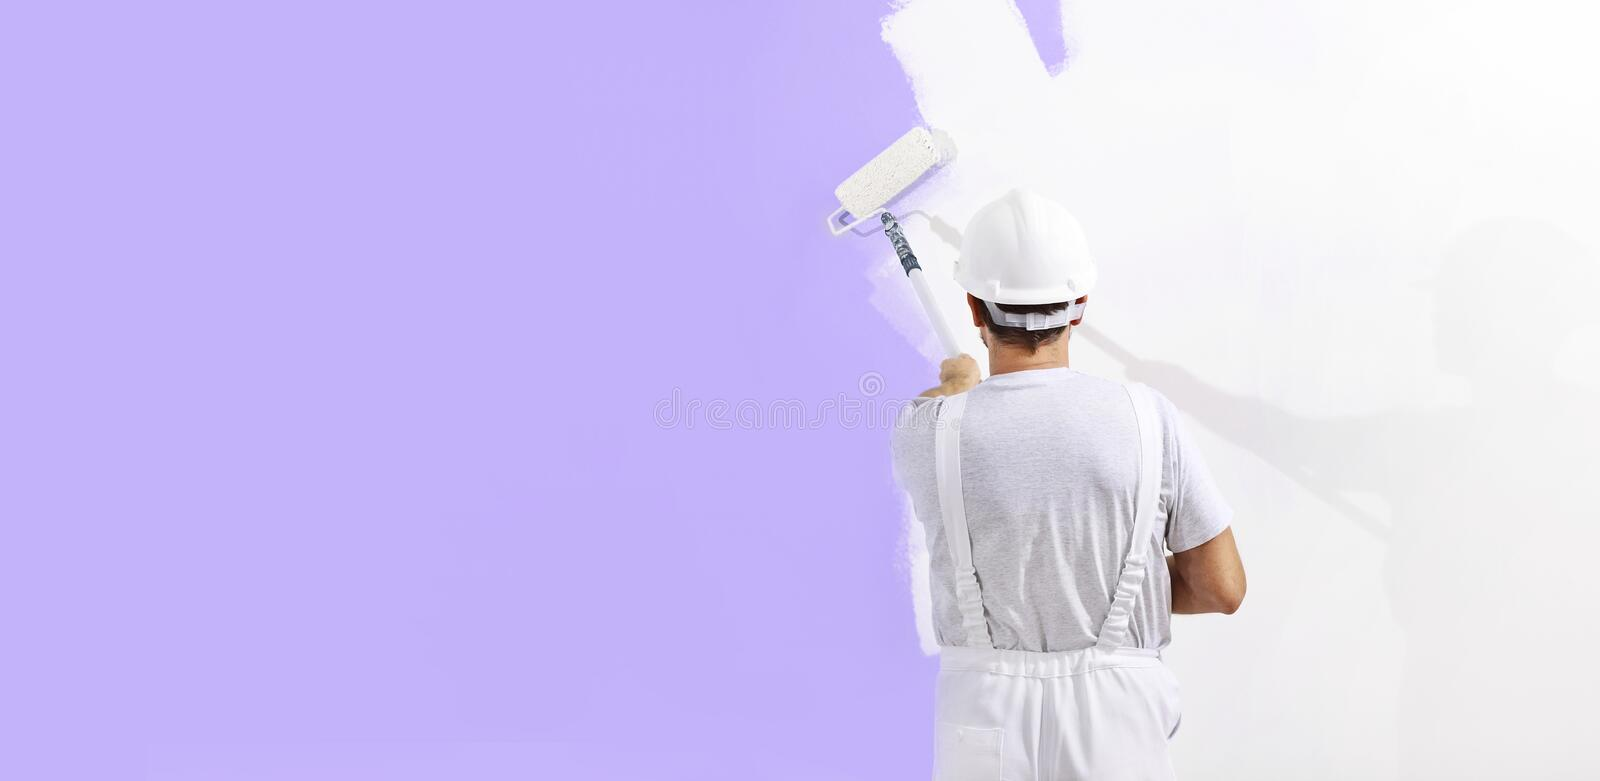 Painter man at work with a paint roller, wall painting concept, web banner and copy space template stock photography